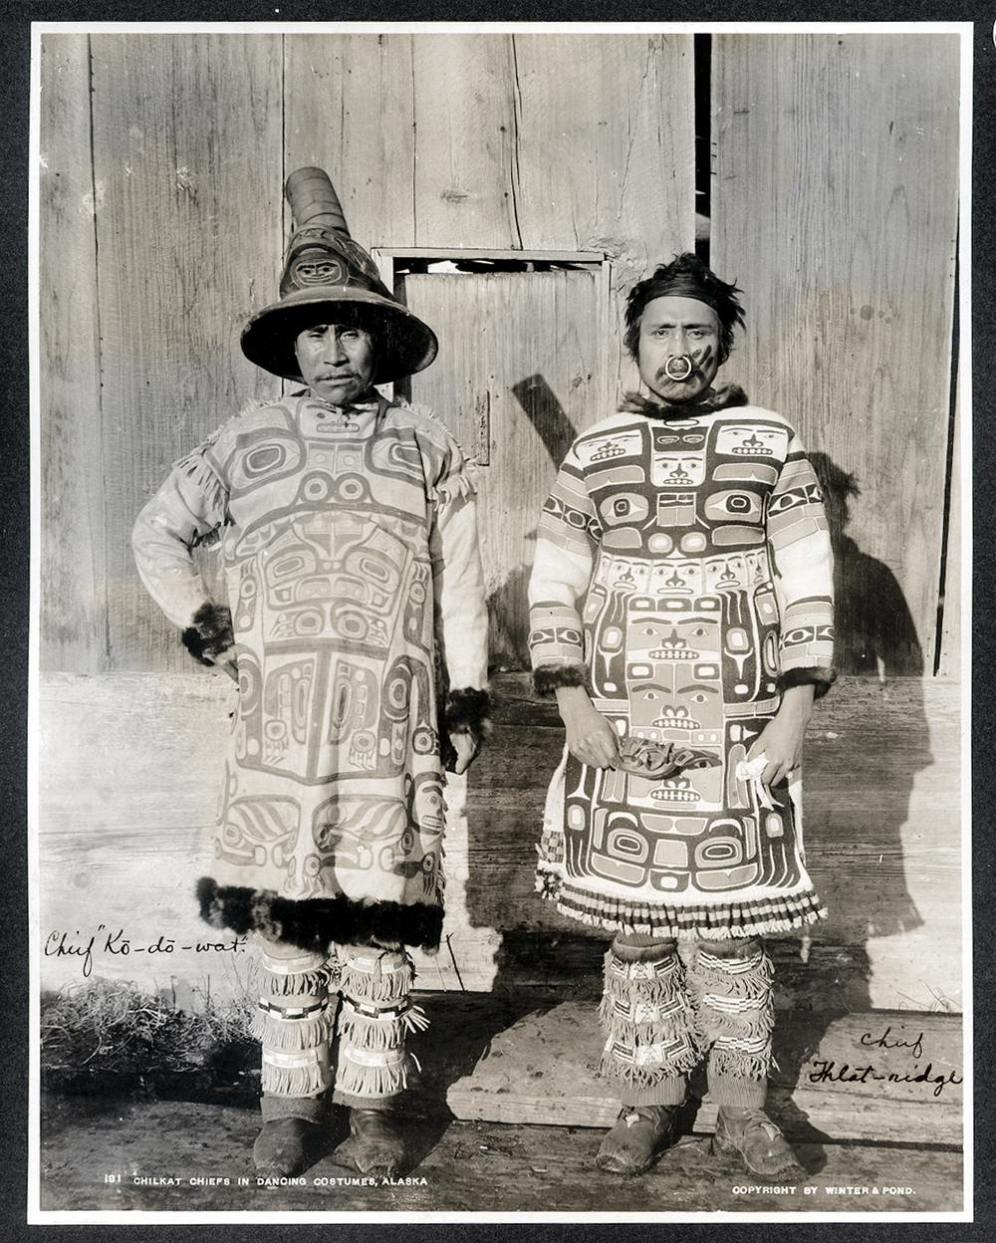 Chilkat (Tlingit) Chiefs in Dancing Costumes, Southeast Alaska. - Coudahwot and Yehlh-gouhu, chiefs of the Con-nuh-ta-di at Klukwan, wearing totemic design dance shirts and beaded leggings. Photographer: Winter & Pond, ca. 1895.: